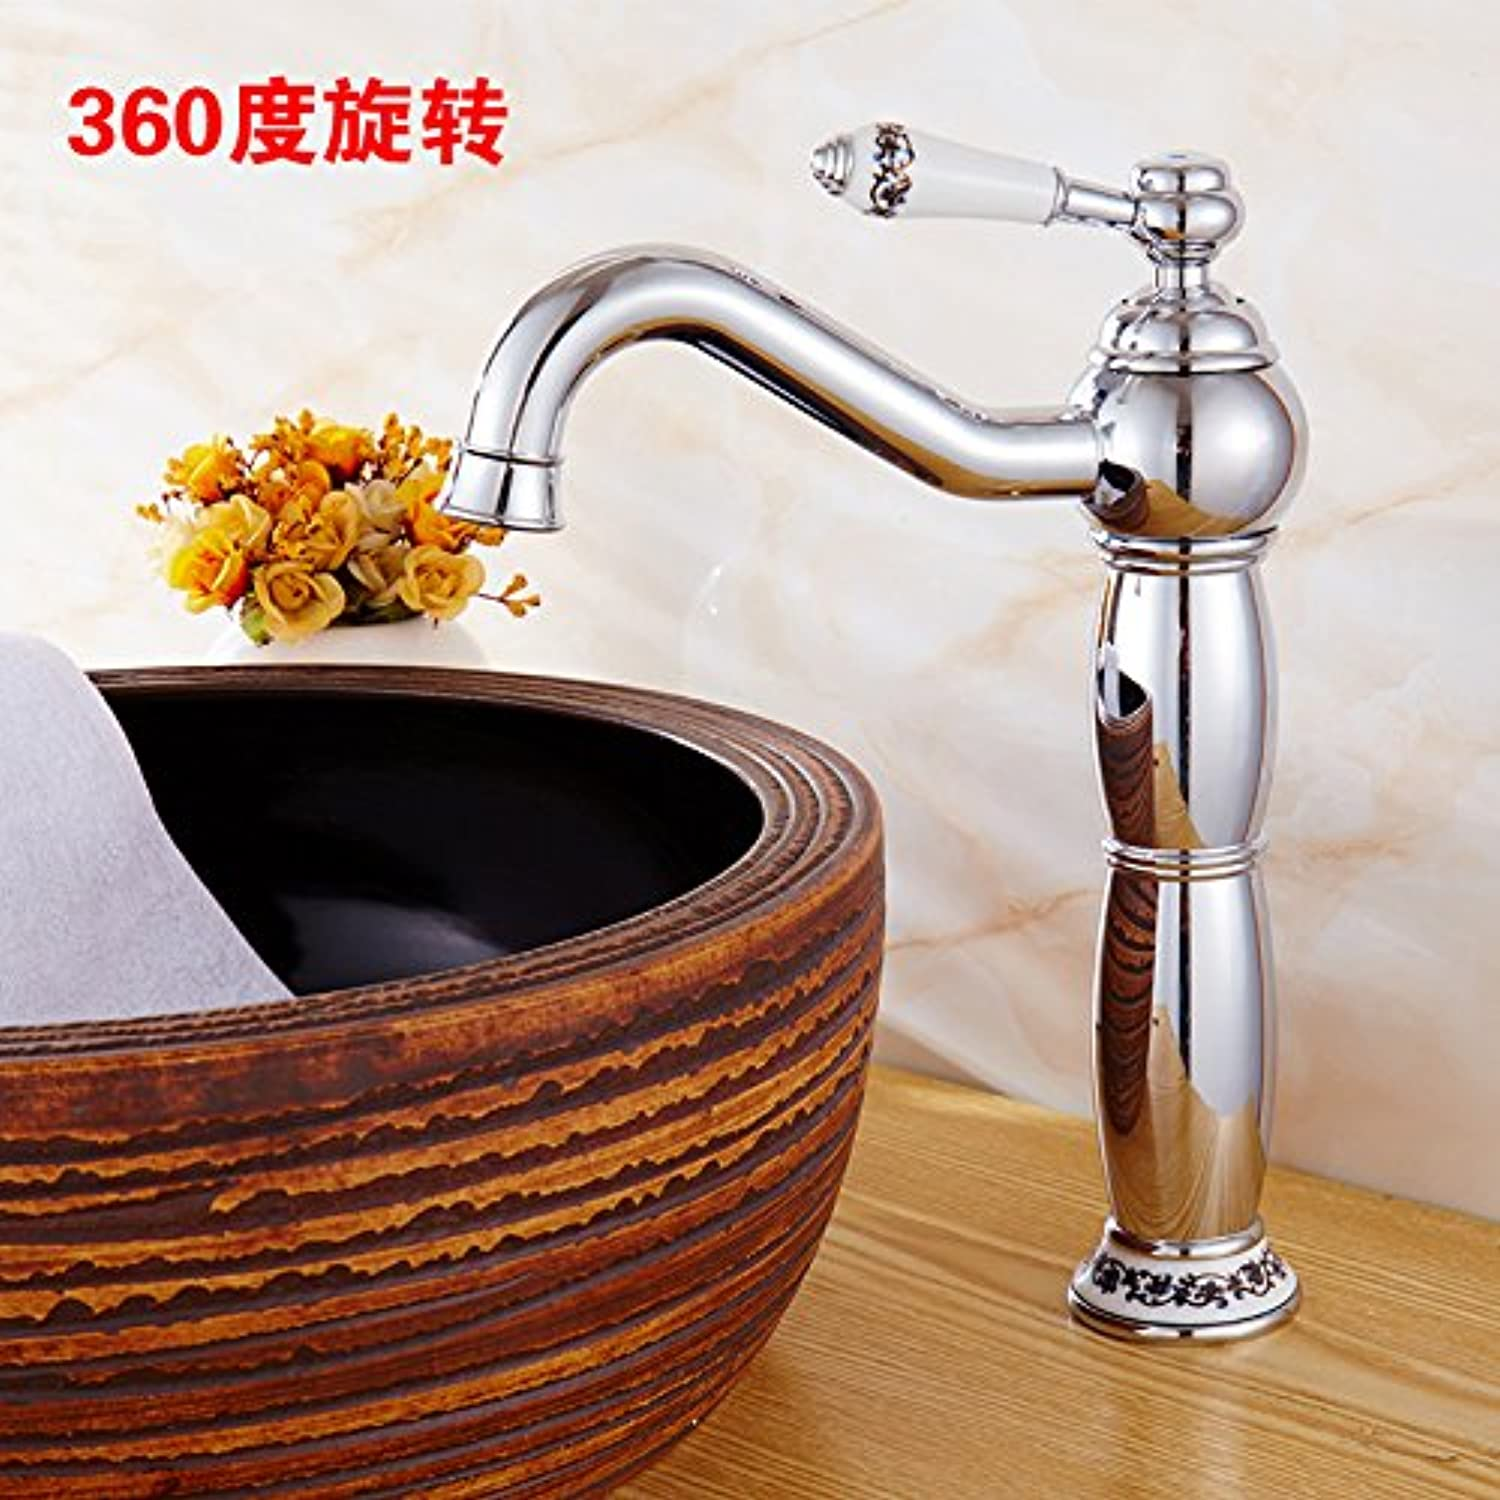 redOOY Faucet Taps golden Faucet Hot And Cold Faucet Copper Bathroom With High bluee And White Porcelain Counter Basin gold-Plated Antique Faucet, Silver bluee And White Porcelain redation Heightening